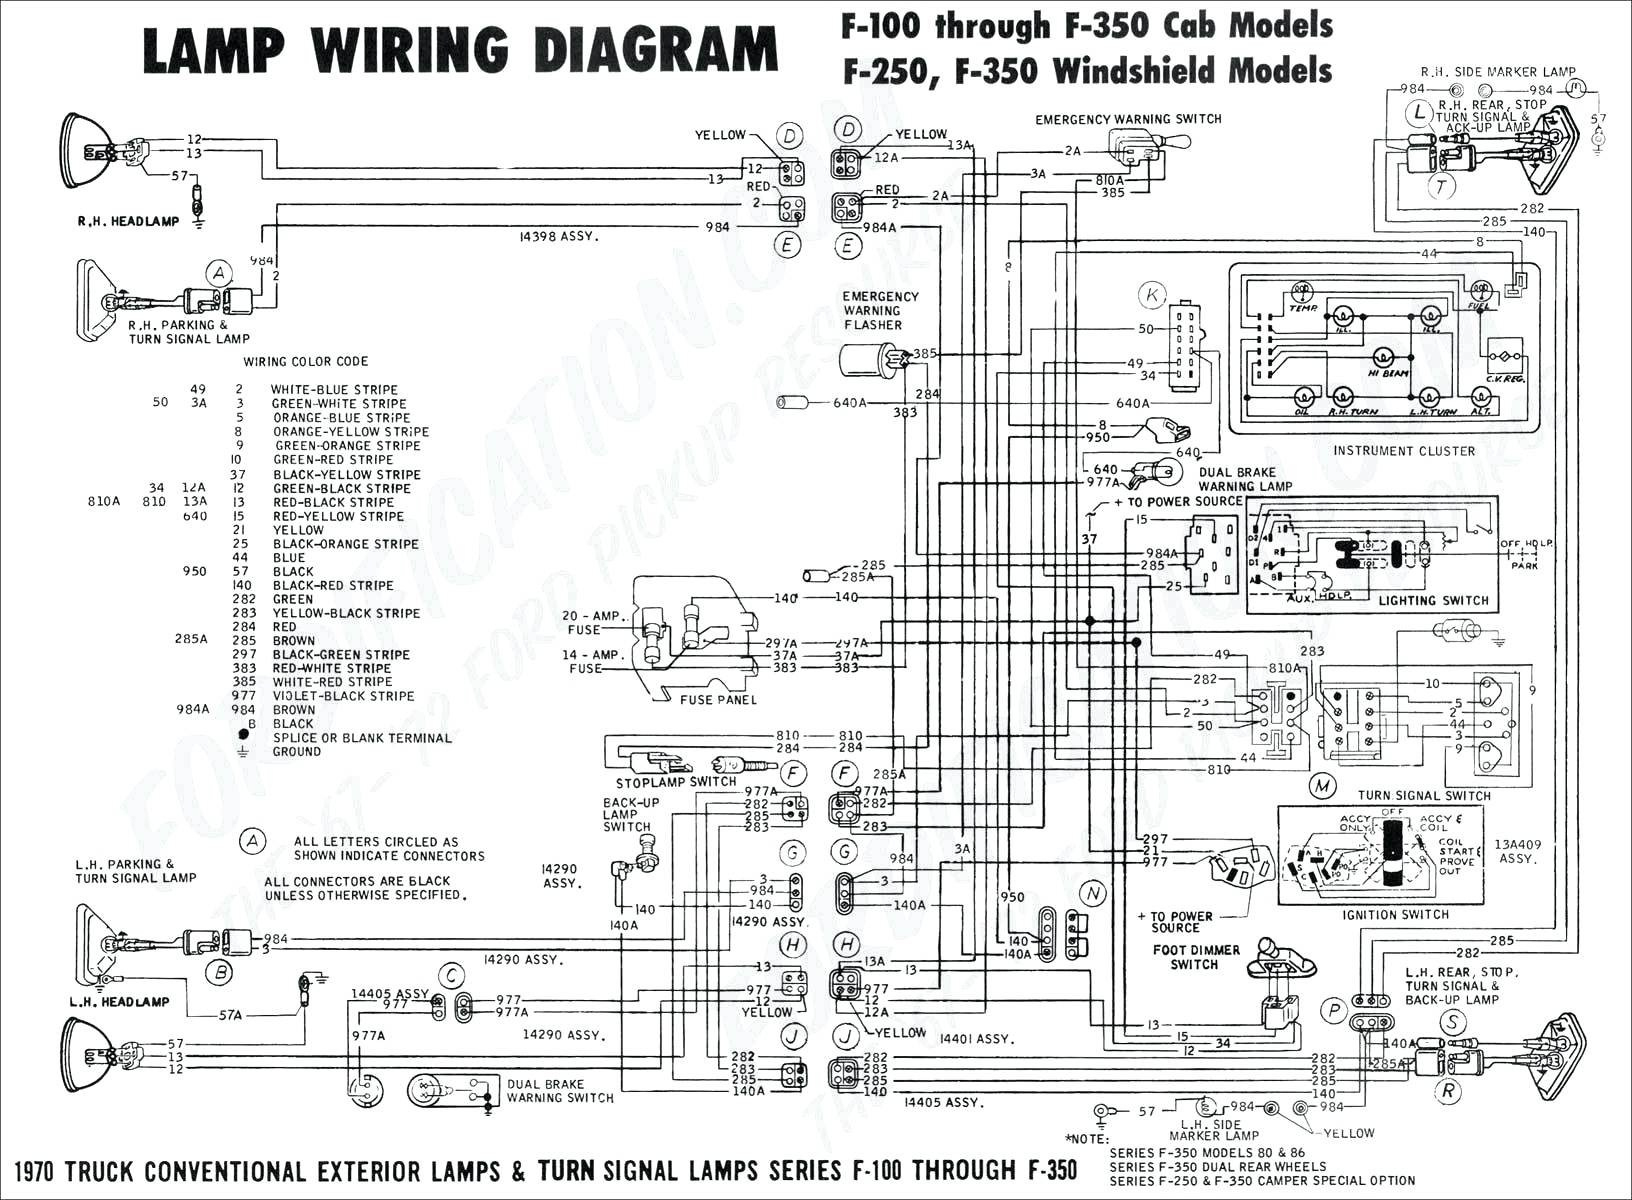 Timpte Trailer Wiring Diagram | Wiring Diagram - Trailer Plug Wiring Diagram 7 Pin